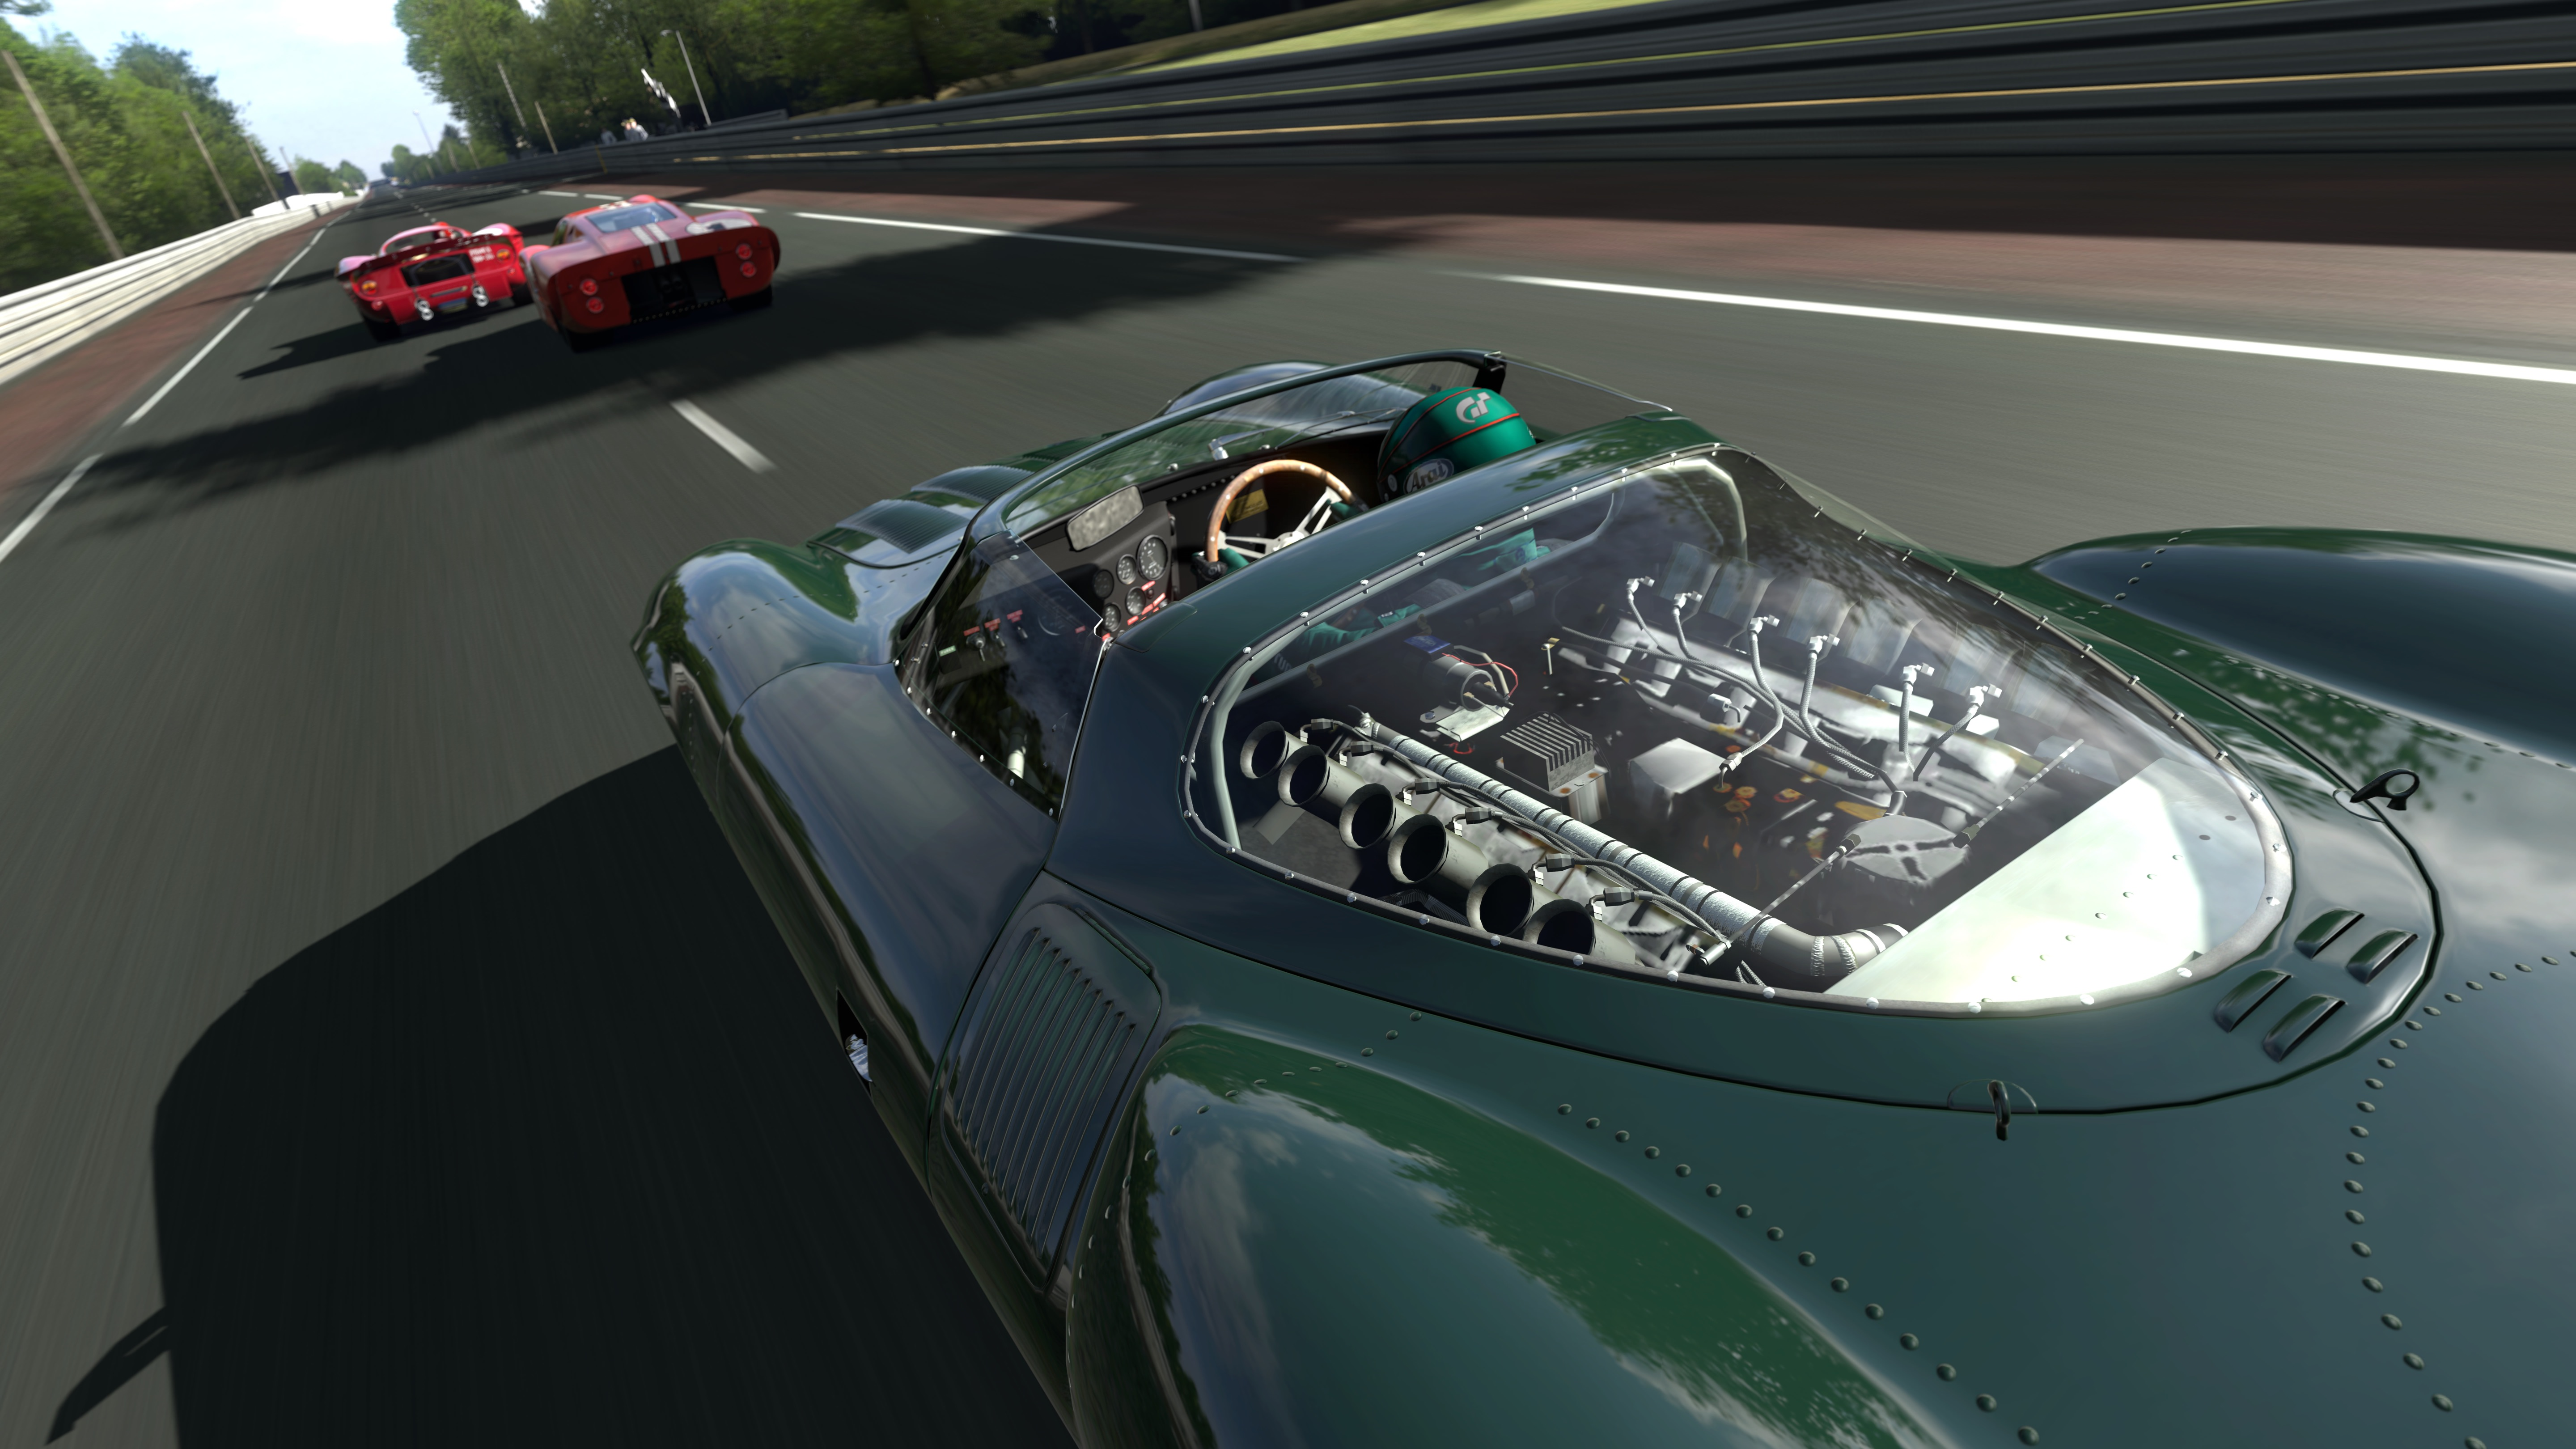 More Micro Transaction Woes: Gran Turismo 6u0027s Most Expensive Car Costs  £120.00